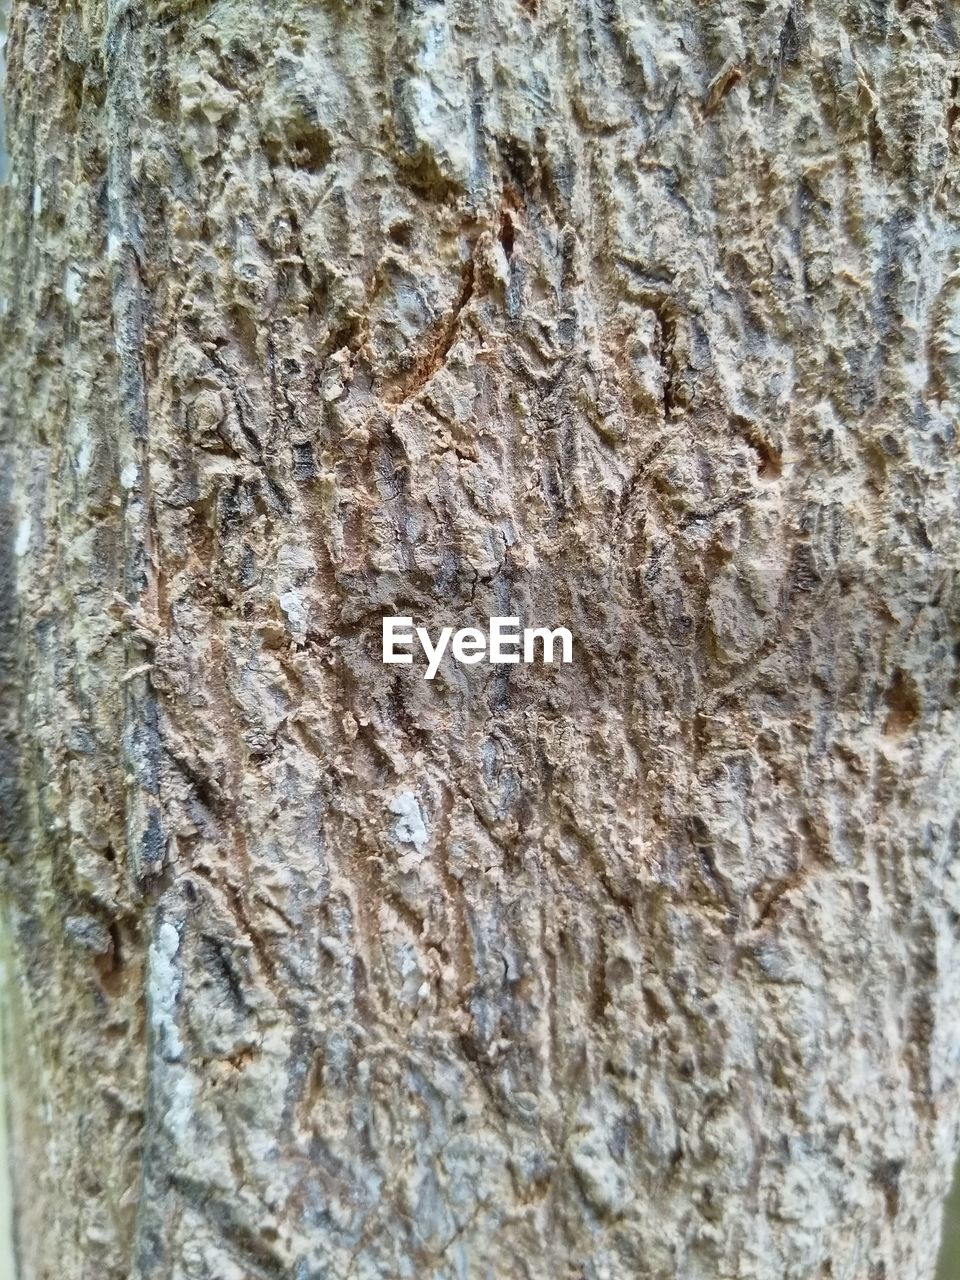 FULL FRAME SHOT OF TREE BARK